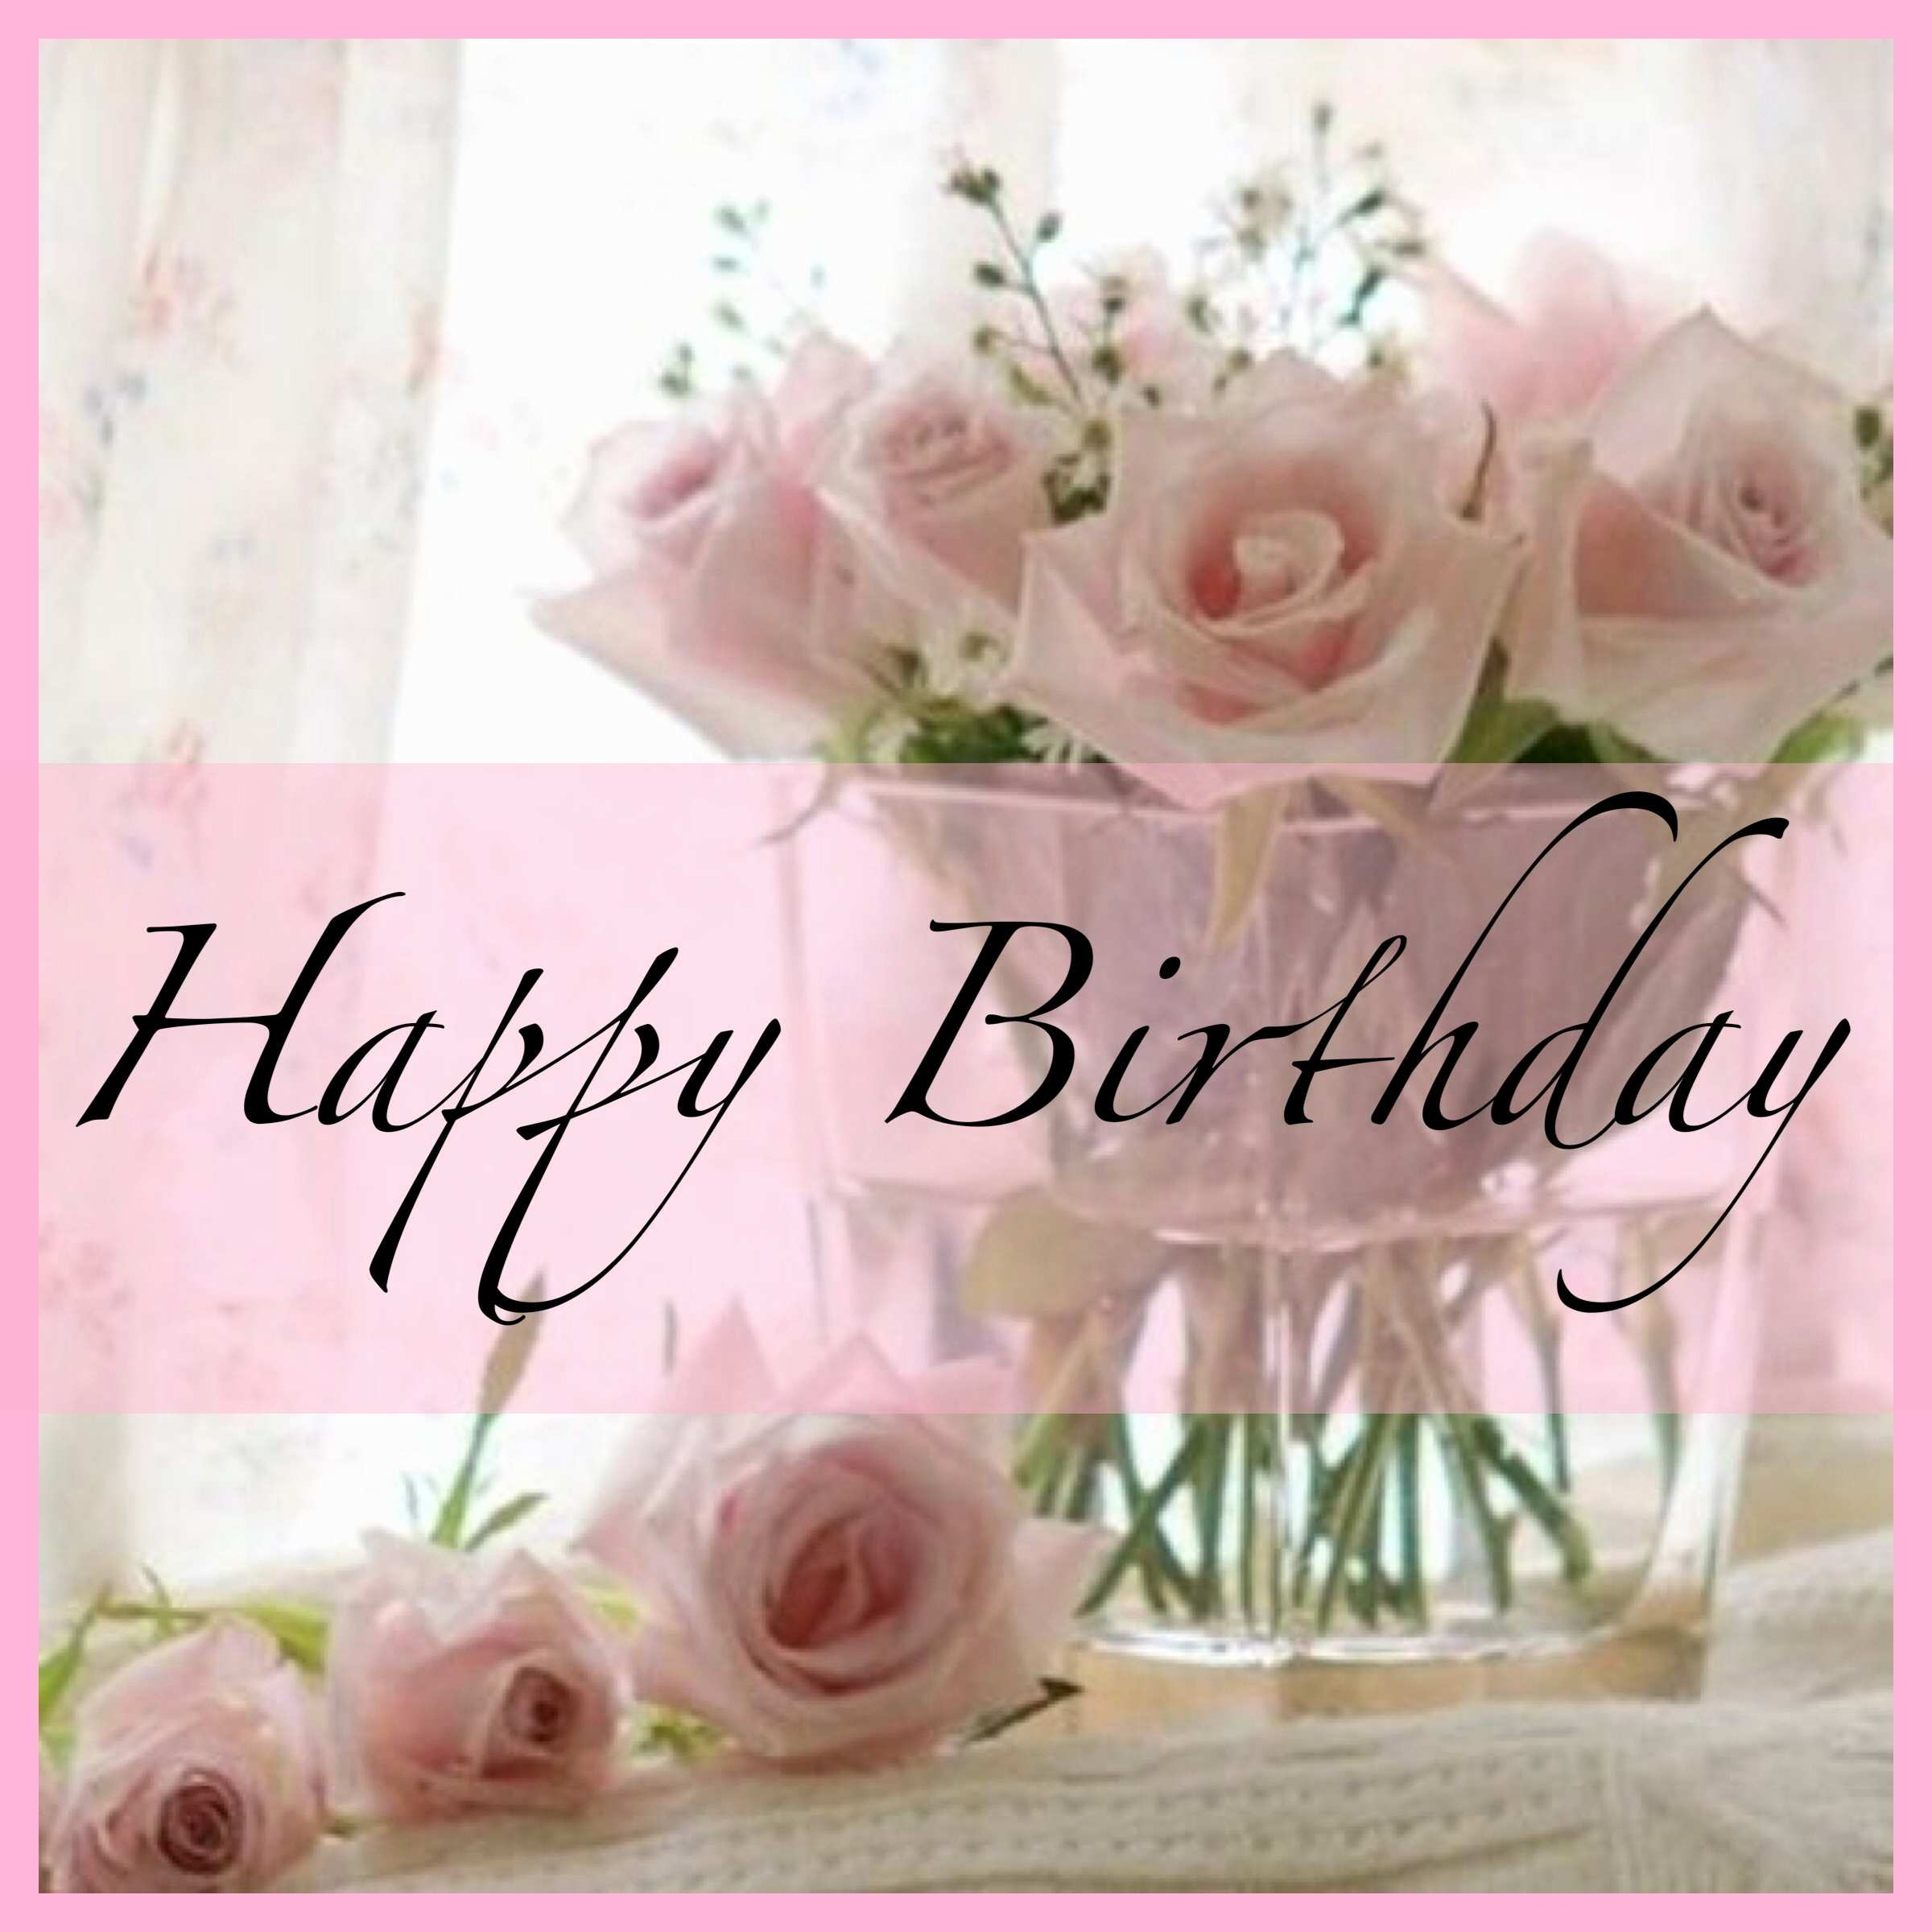 happy birthday blessings quotes ; happy-birthday-images-religious-luxury-happy-birthday-religious-quotes-unique-43-sincere-thank-you-messages-of-happy-birthday-images-religious